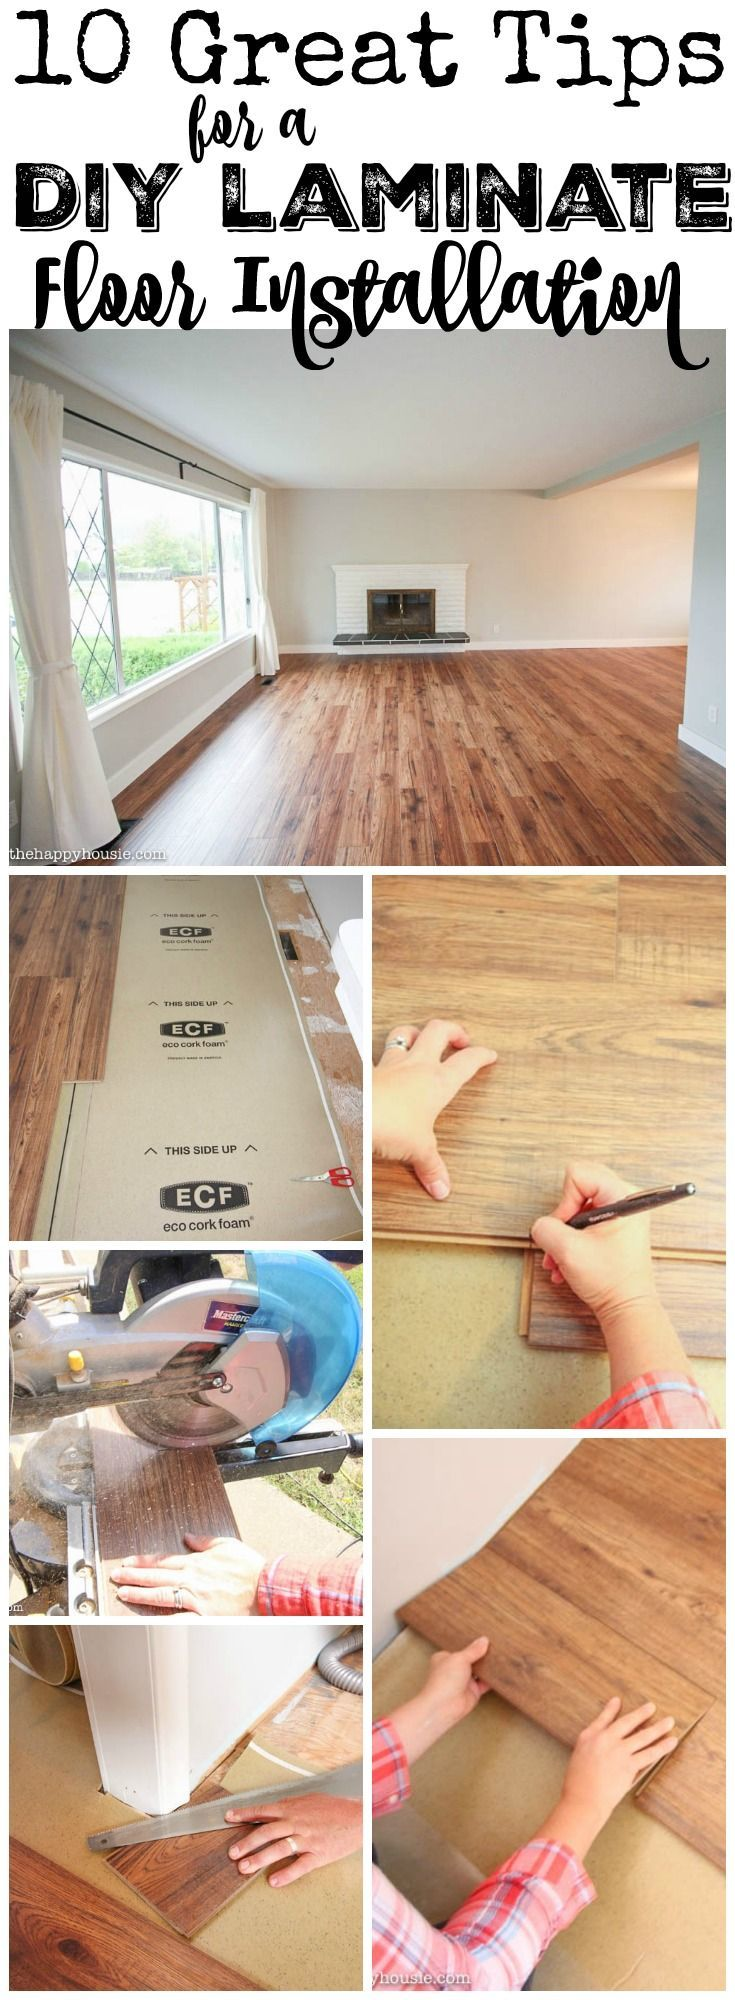 10 Great Tips For A Diy Laminate Floor Installation At Thehappyhousie Com